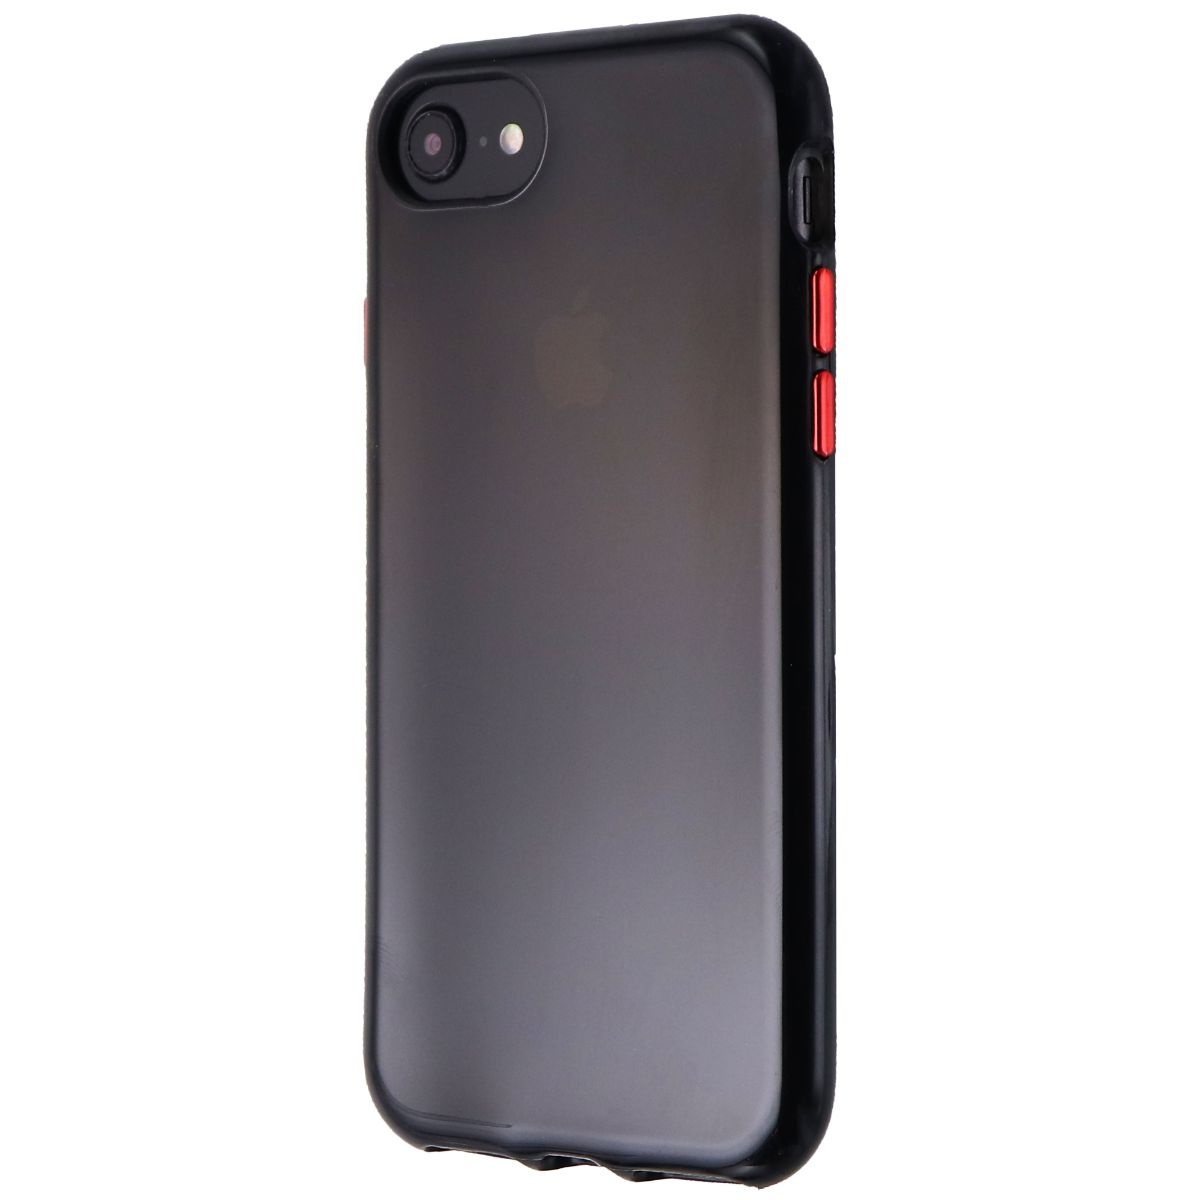 Nimbus9 Phantom 2 Series Case for Apple iPhone 8 / 7 / 6s / 6 - Black/Red